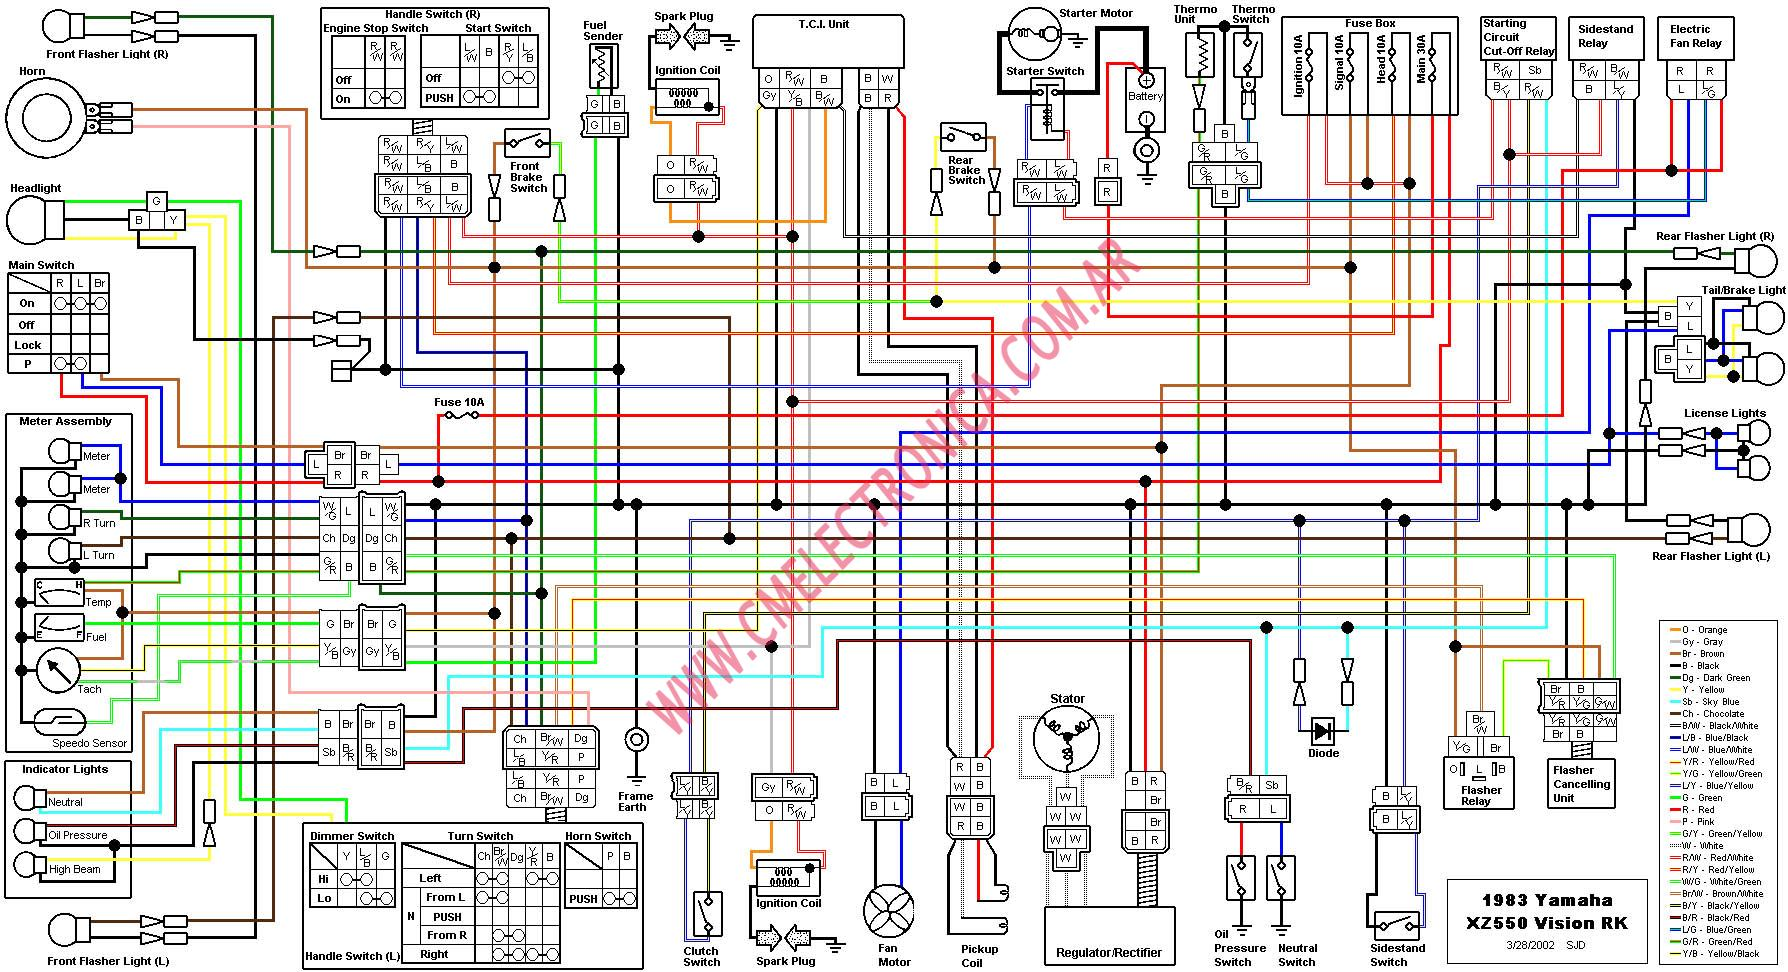 Diagram Yamaha Xt200 Wiring Diagram Full Version Hd Quality Wiring Diagram Widewebdiagram La Fureur De Vivre Fr